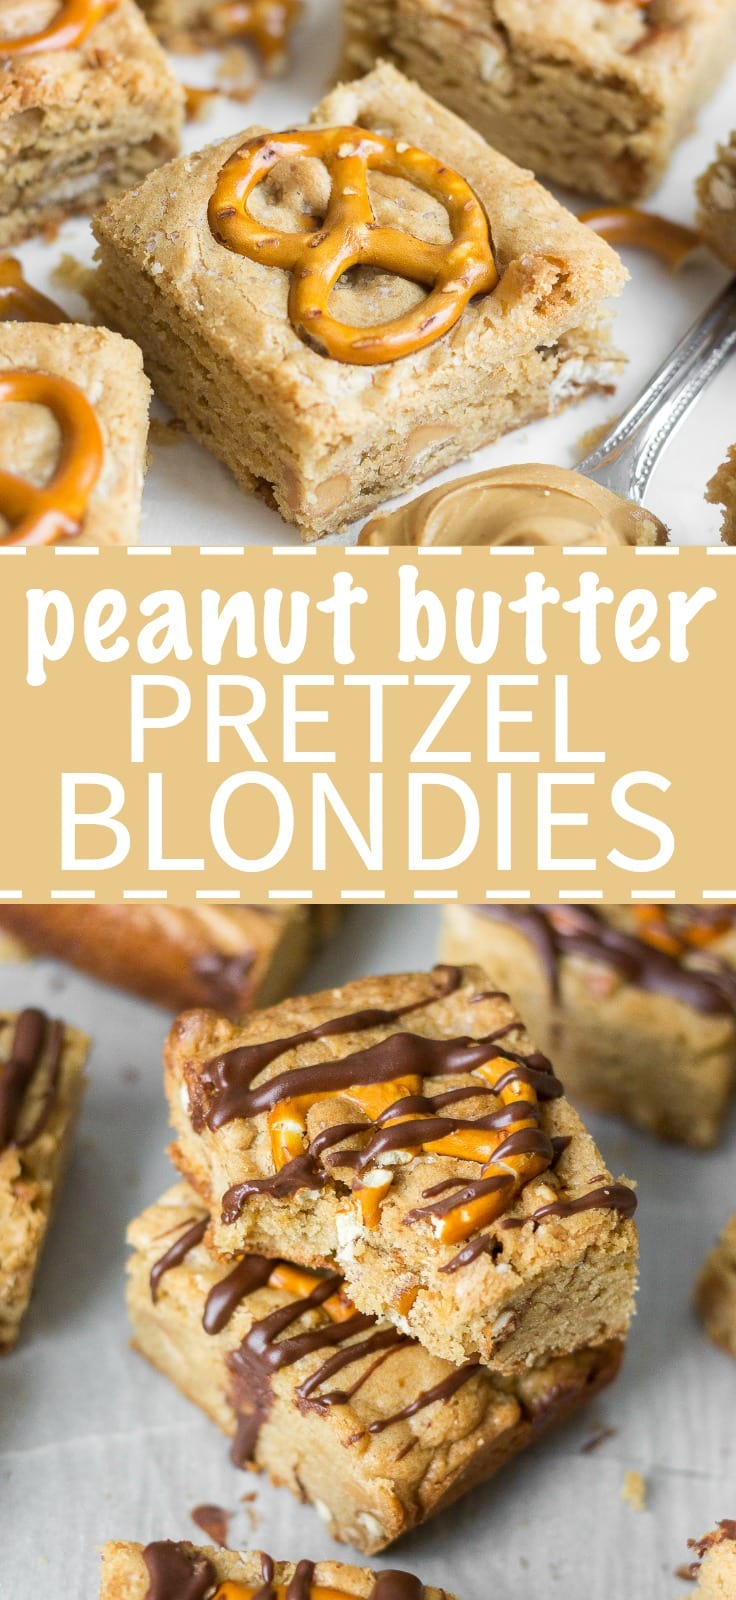 Thick and chewy peanut butter pretzel blondies! This easy-to-make dessert recipe comes together in minutes with no hand mixer required. It's full of flavor from the peanut butter and the pretzels give it the best crunchy texture.